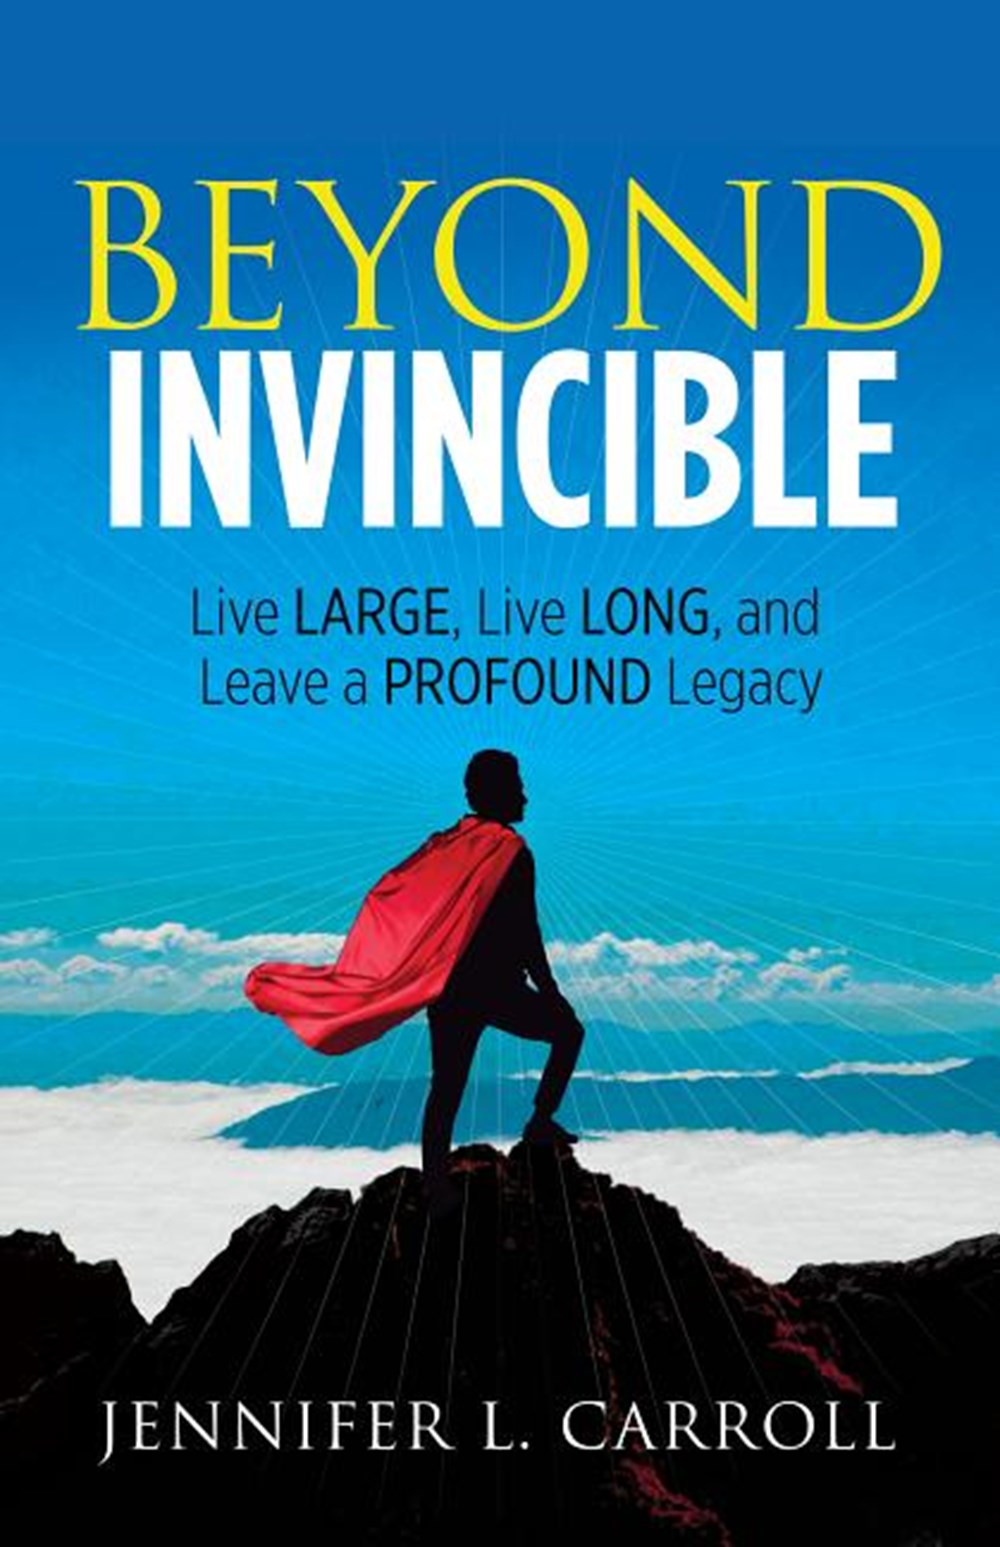 Beyond Invincible Live Large, Live Long and Leave a Profound Legacy